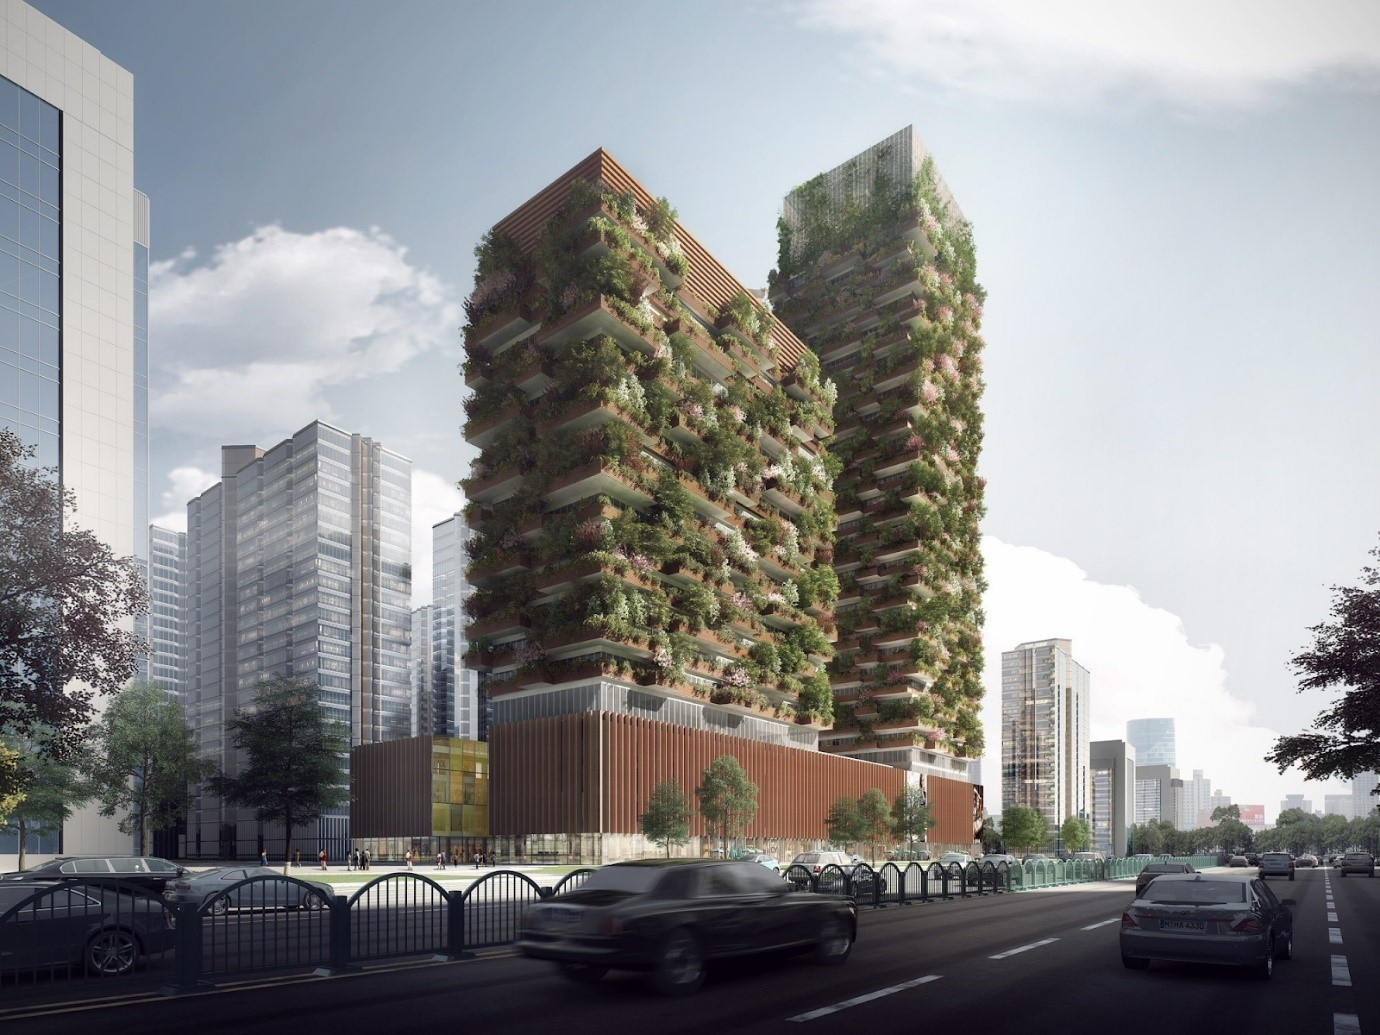 An architectural rendering of the Nanjing Green Towers.